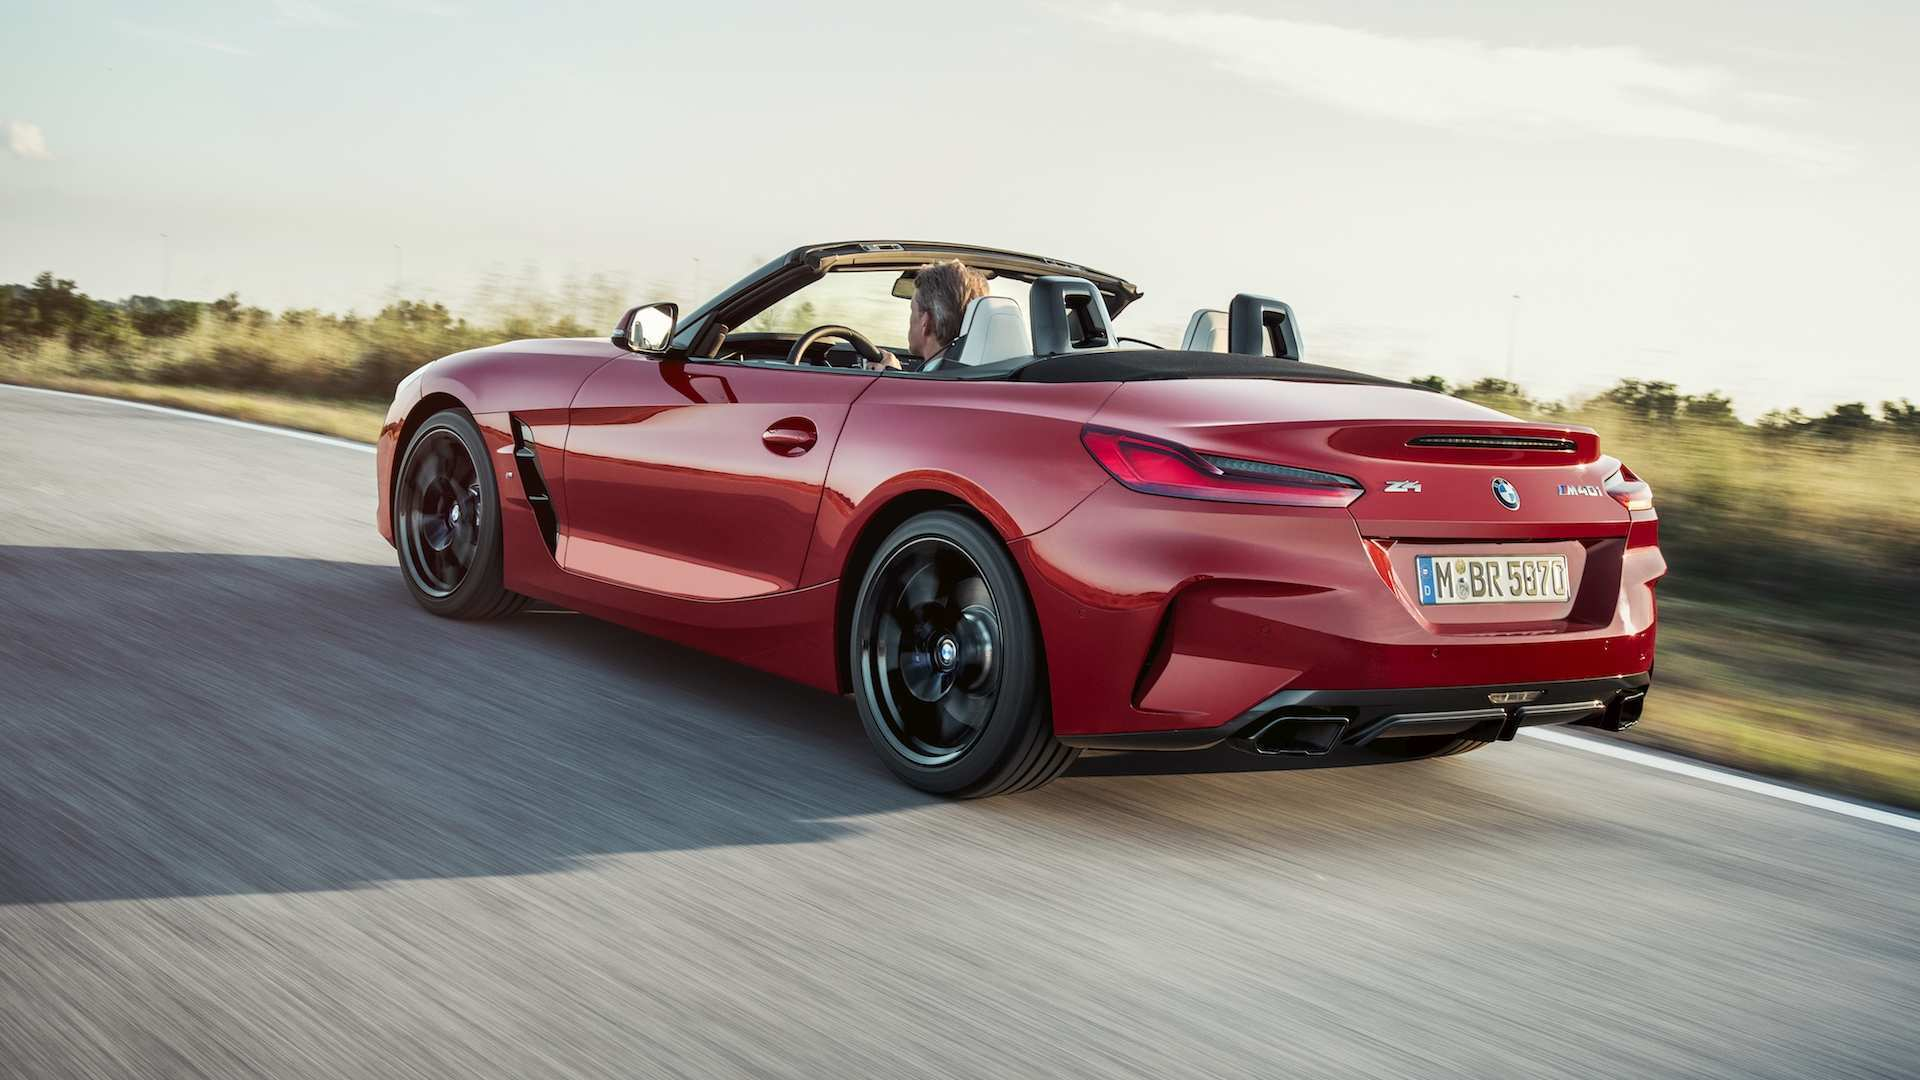 89 The 2019 Bmw Z4 Concept Spy Shoot by 2019 Bmw Z4 Concept